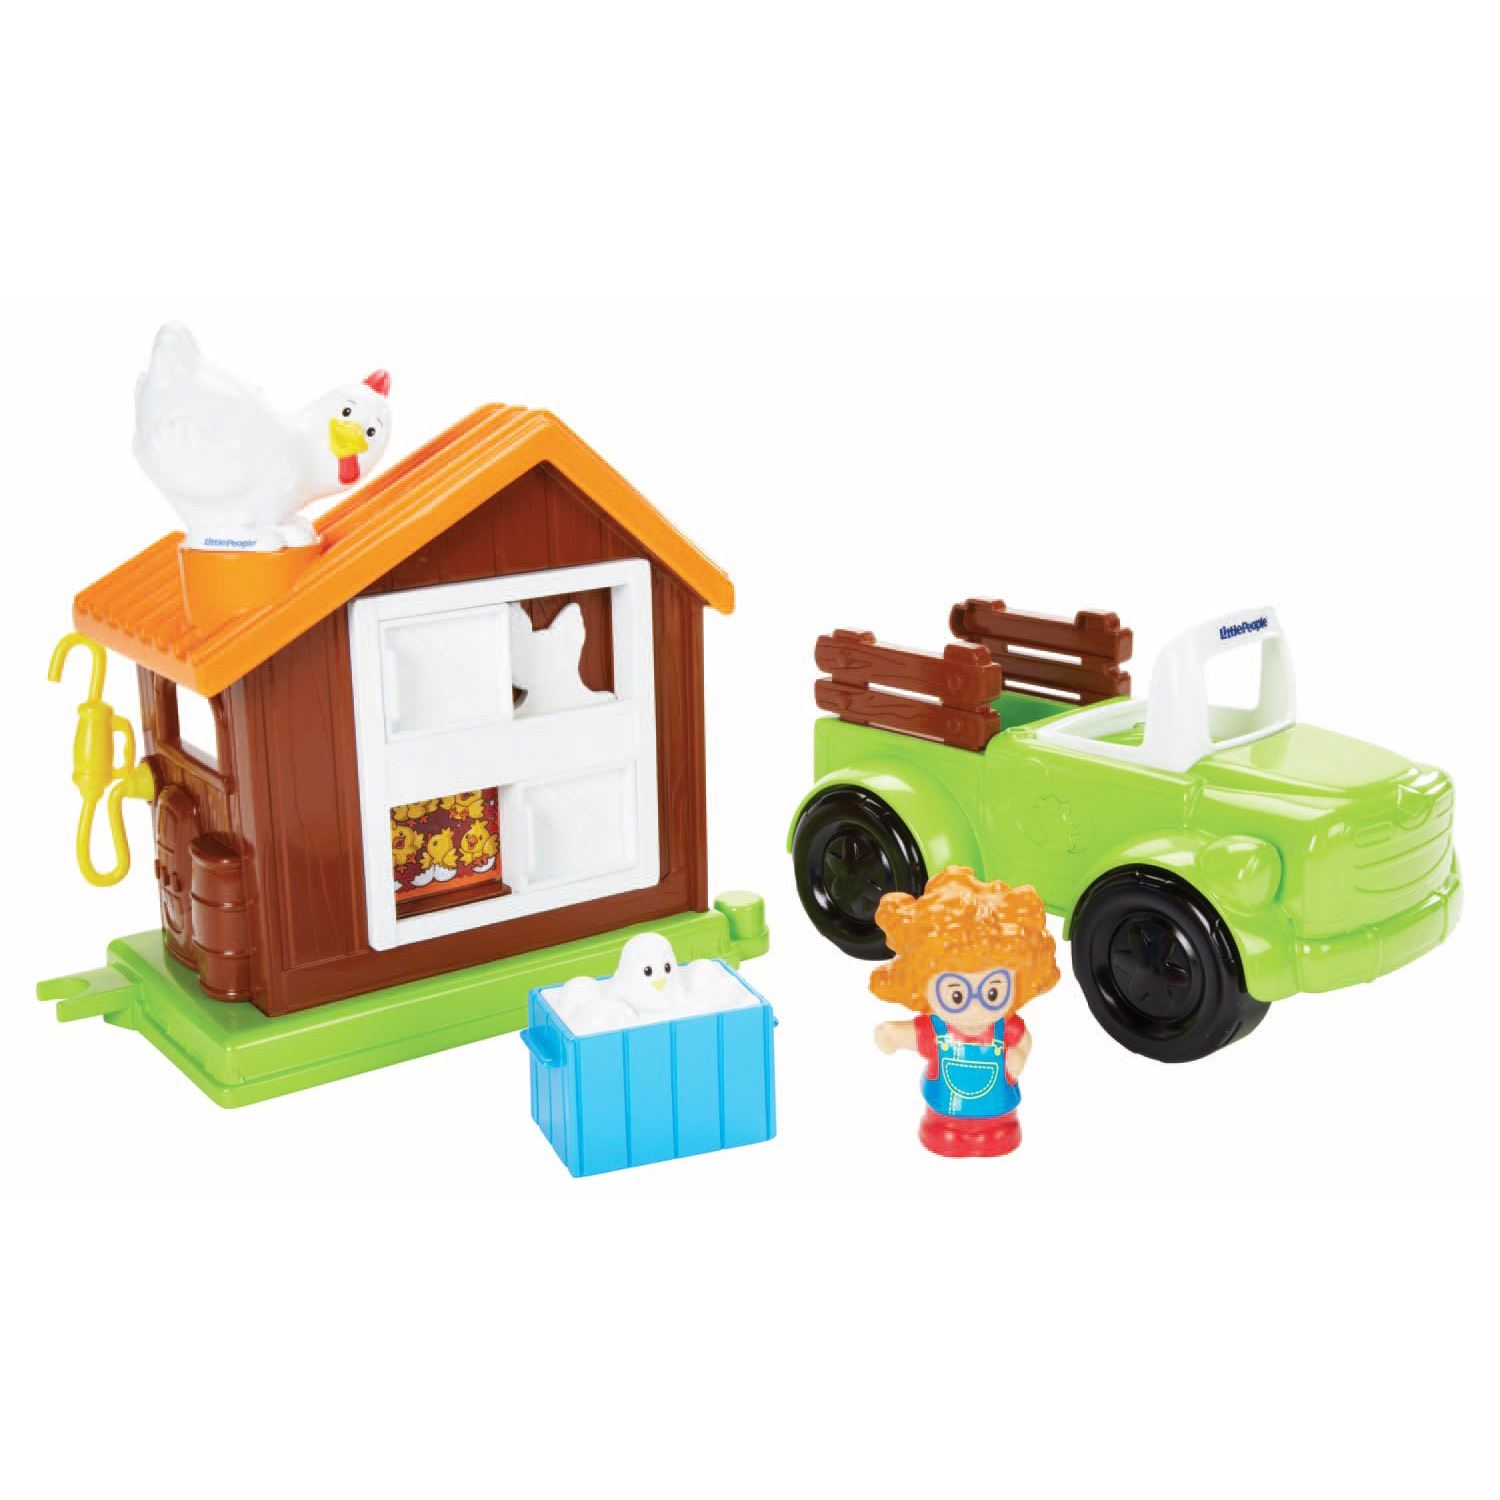 FISHER PRICE LITTLE PEOPLE FARM TRUCK & HOUSE TRACTOR ...